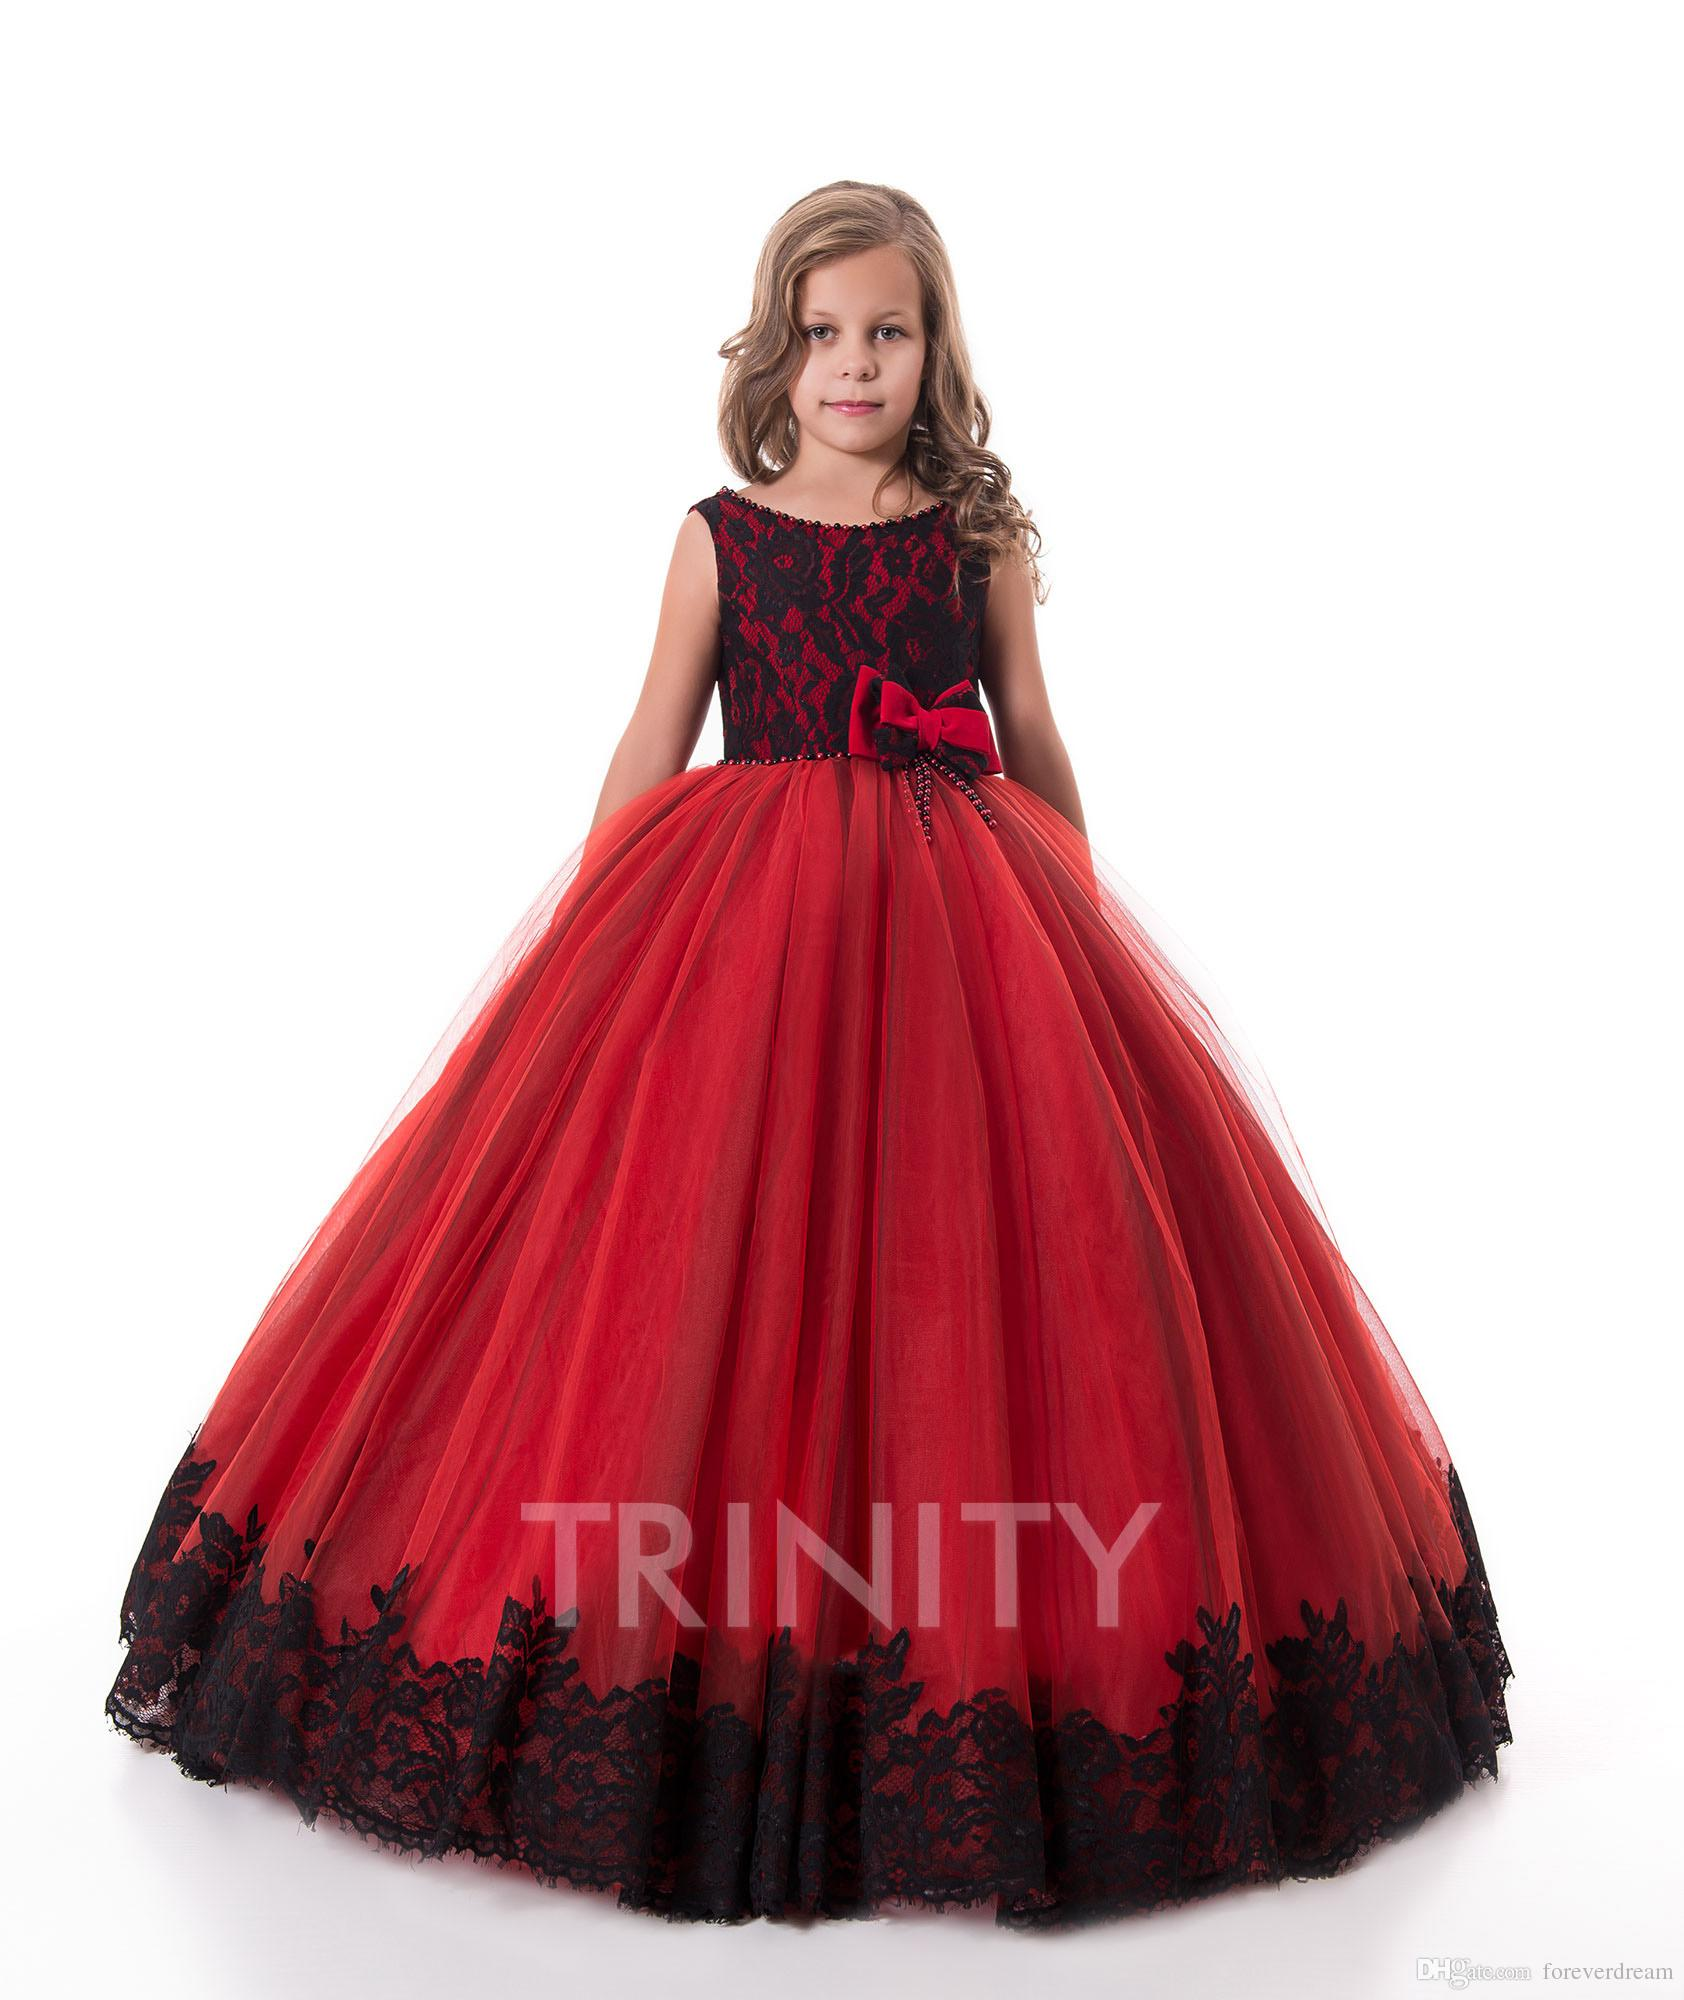 Lovely Red Lace/Tulle Jewel Applique Pearls Flower Girl Dresses Girls' Pageant Dresses Birthday Holidays Dresses Custom Size 2-14 FF726038